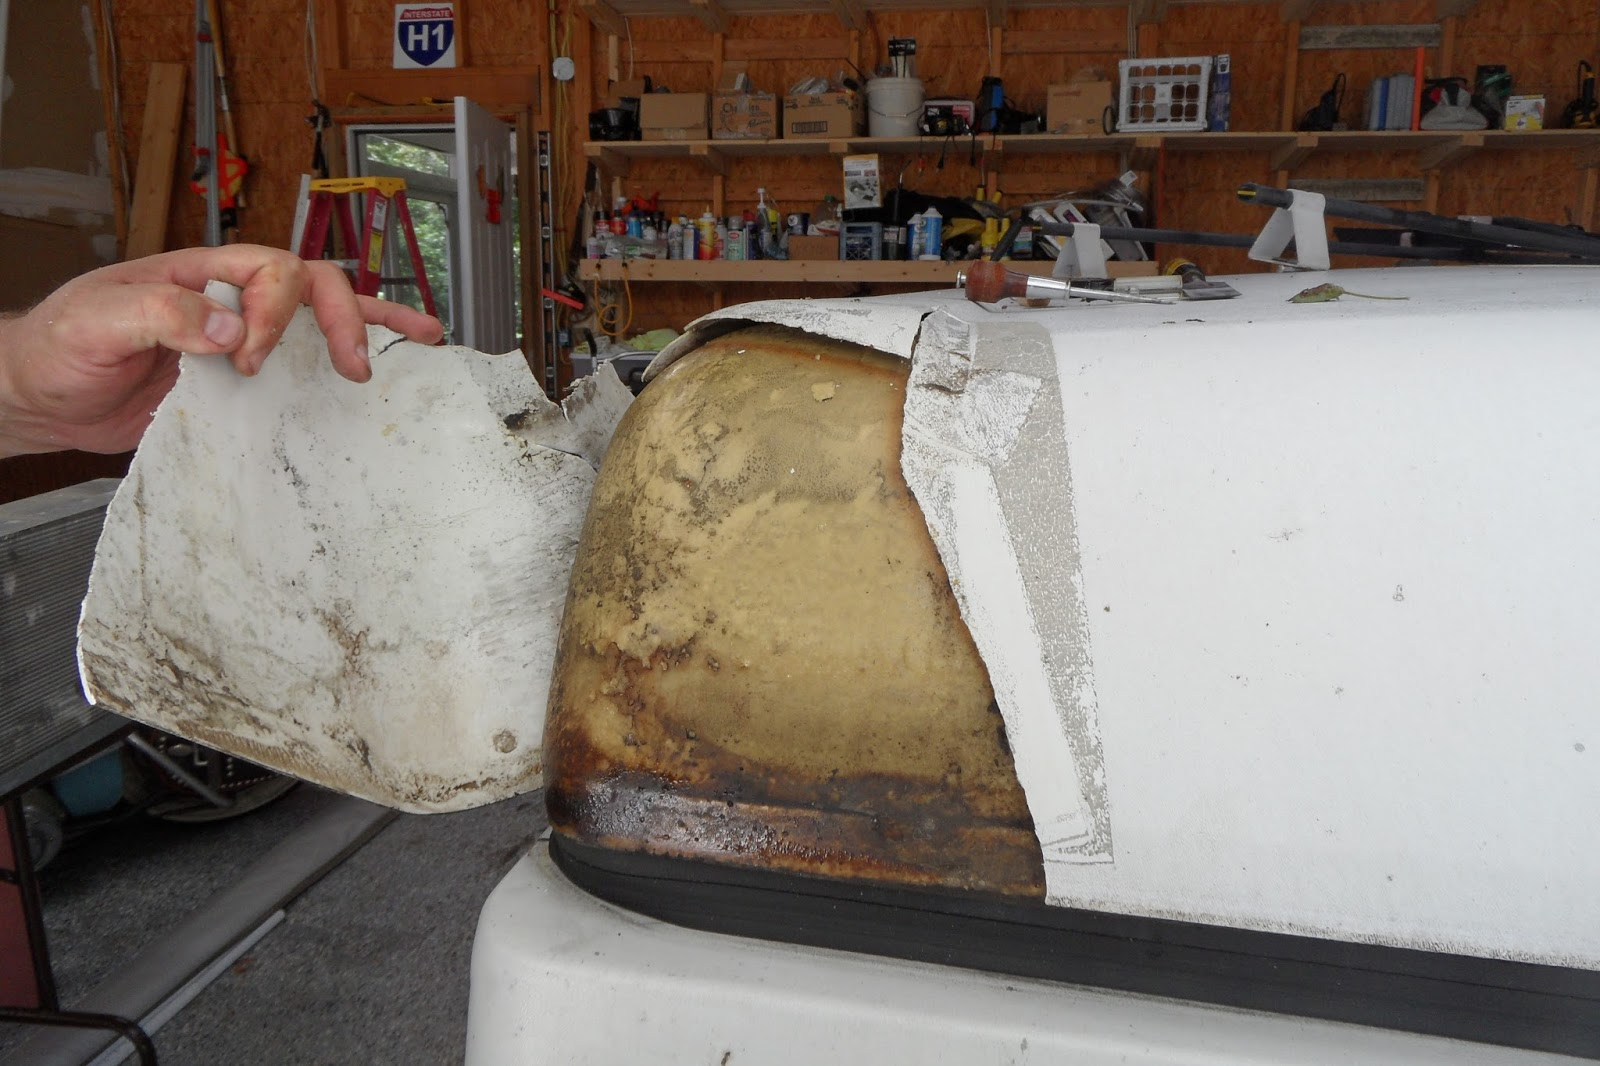 Removing the ABS roof